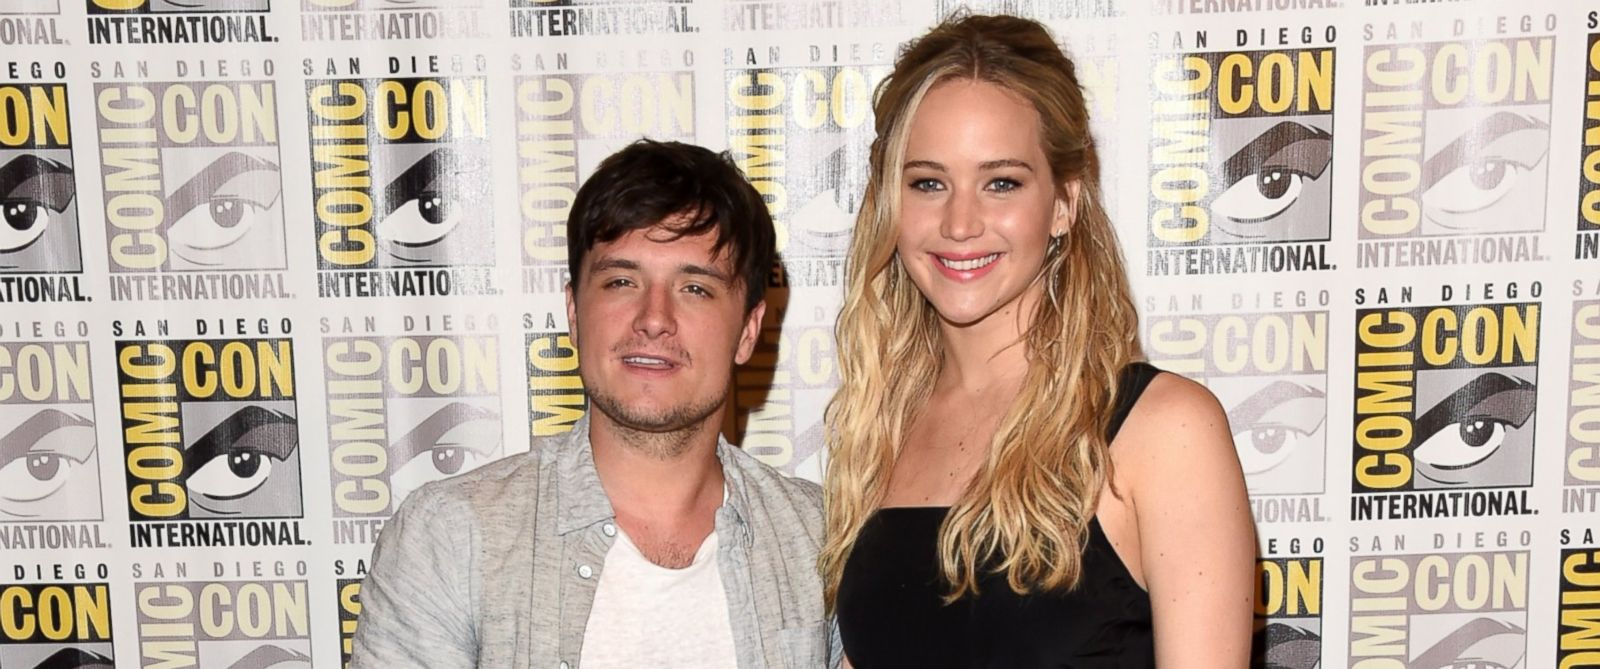 gender pay gap essay the gender wage gap in the united states josh hutcherson reacts to jennifer lawrence wage gap essay calls josh hutcherson calls gender pay gap